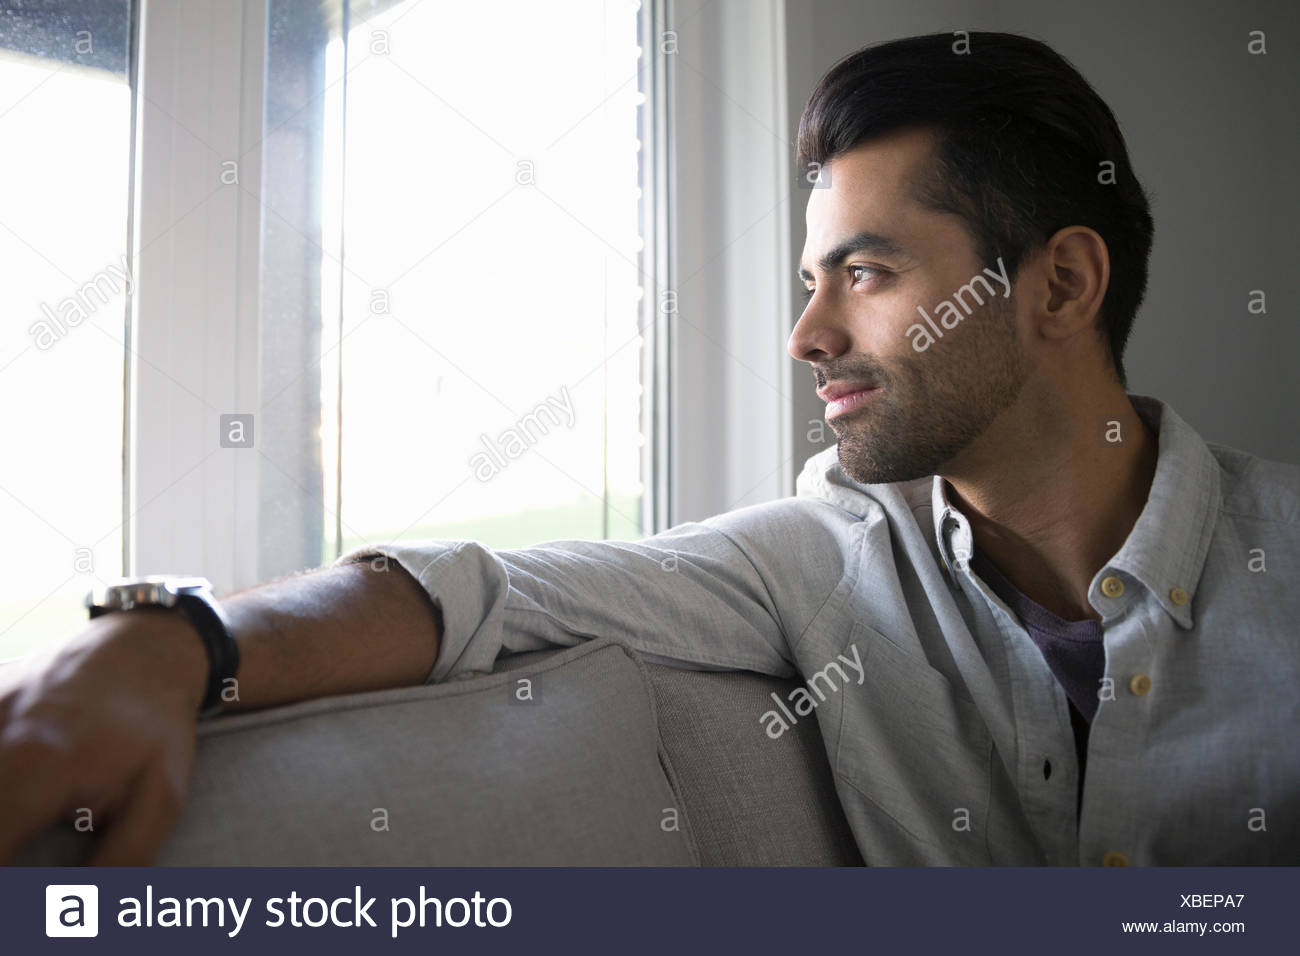 Pensive man on sofa looking out window Photo Stock